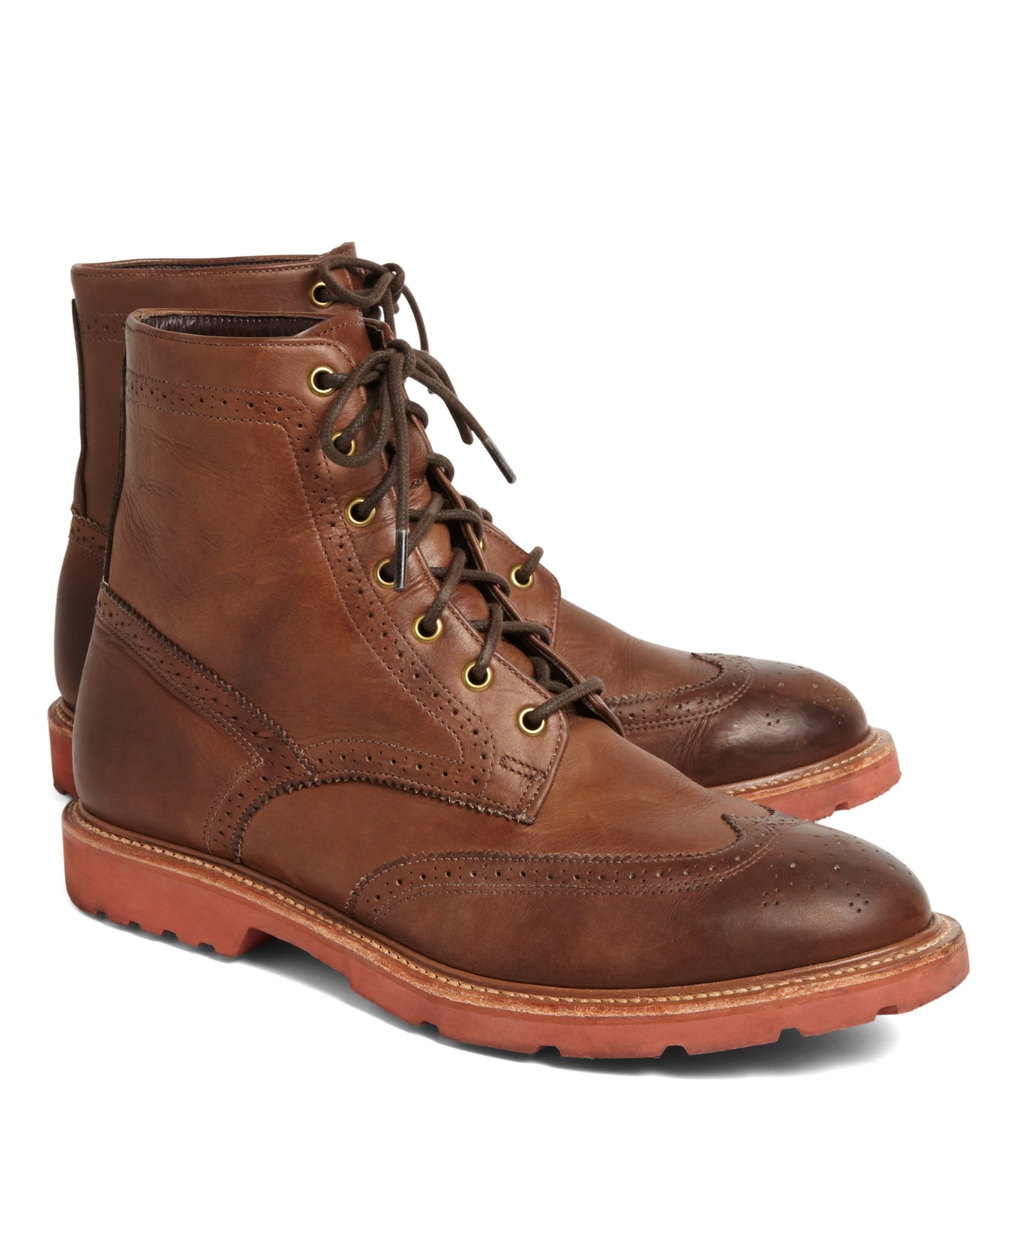 Brooks Brothers Men's Vintage Wingtip Boots